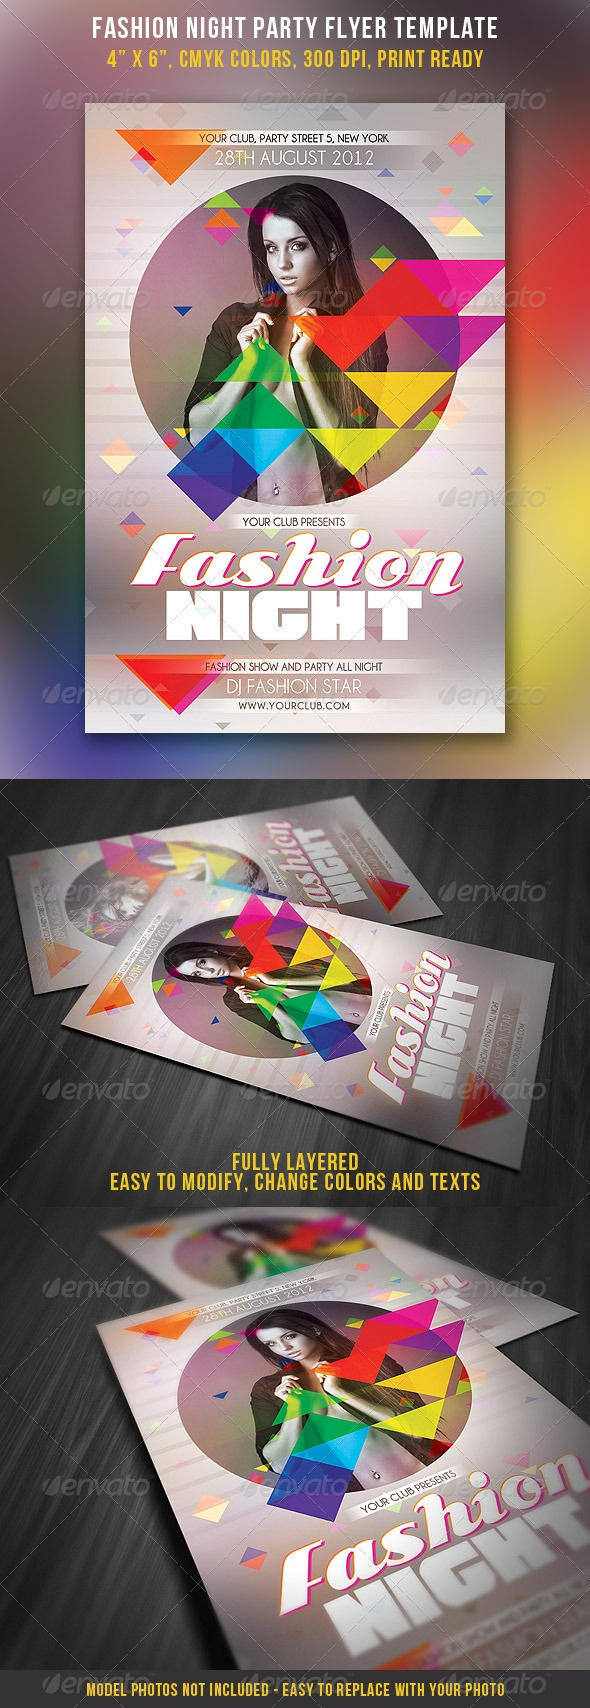 Fashion Night Party Flyer